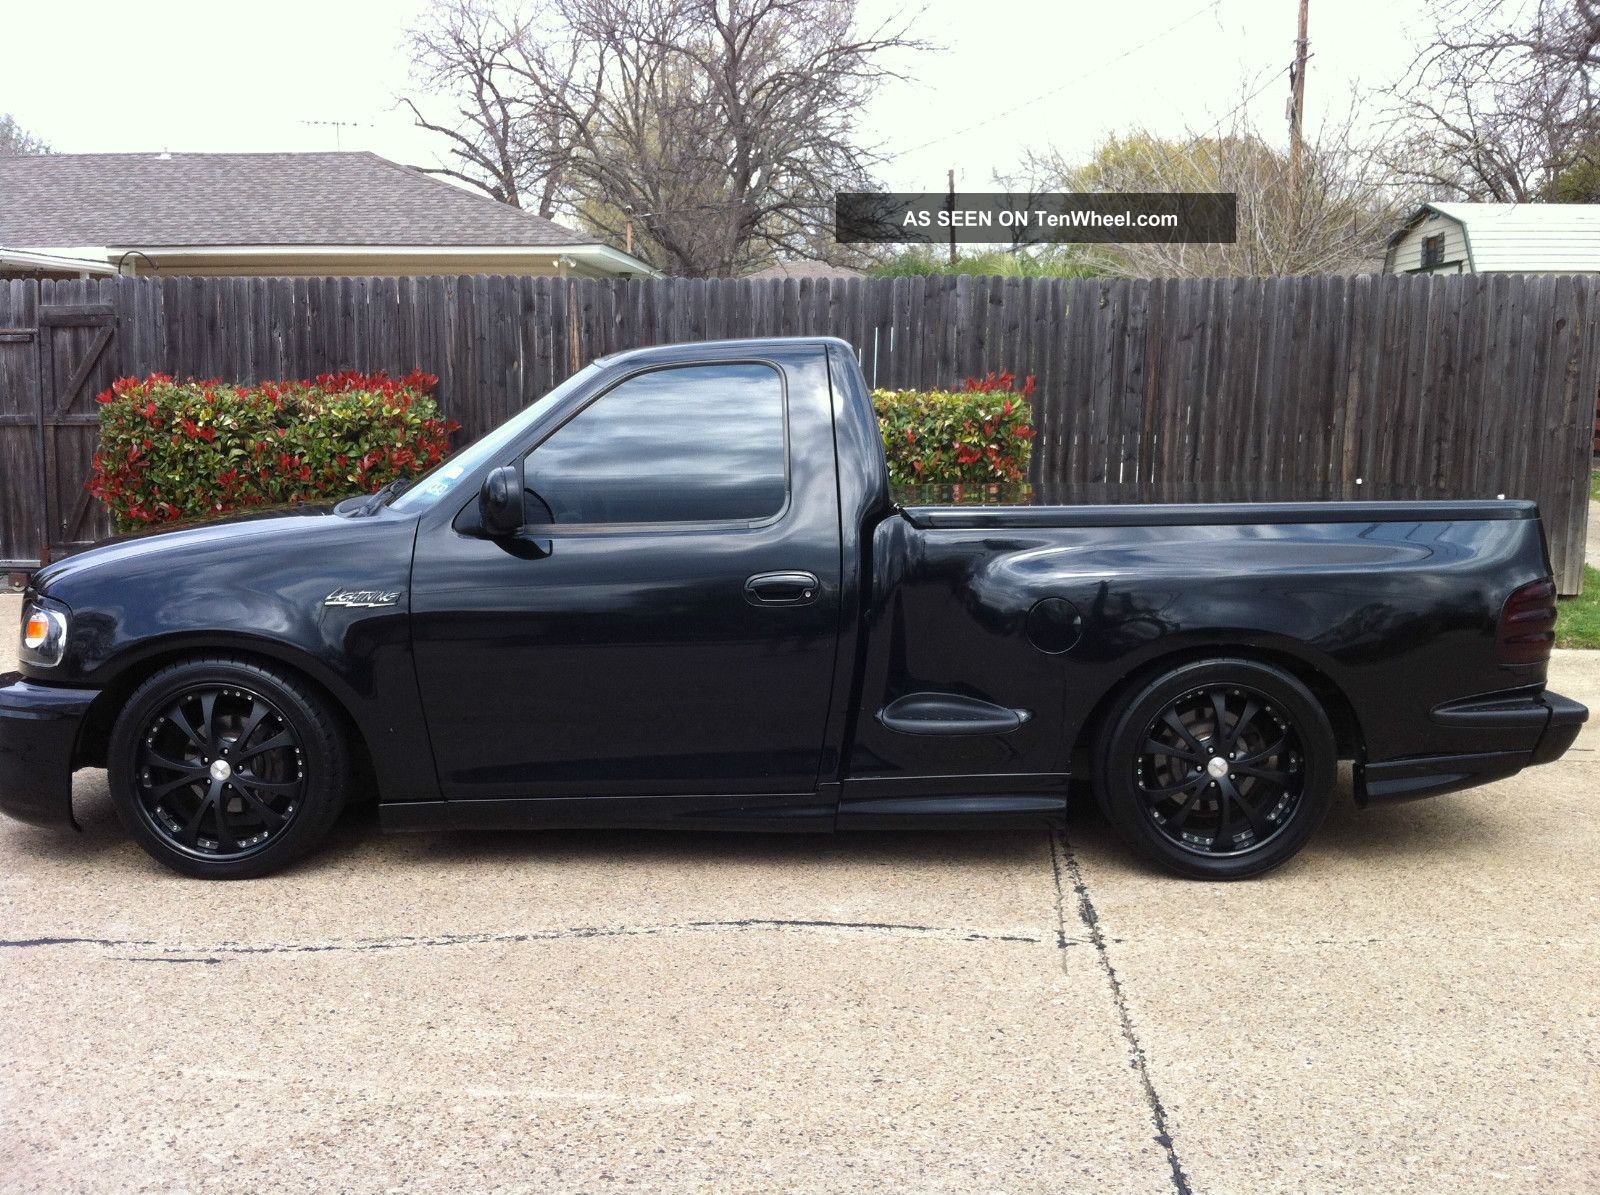 Harley Davidson F150 Supercharged Specs Autos Post